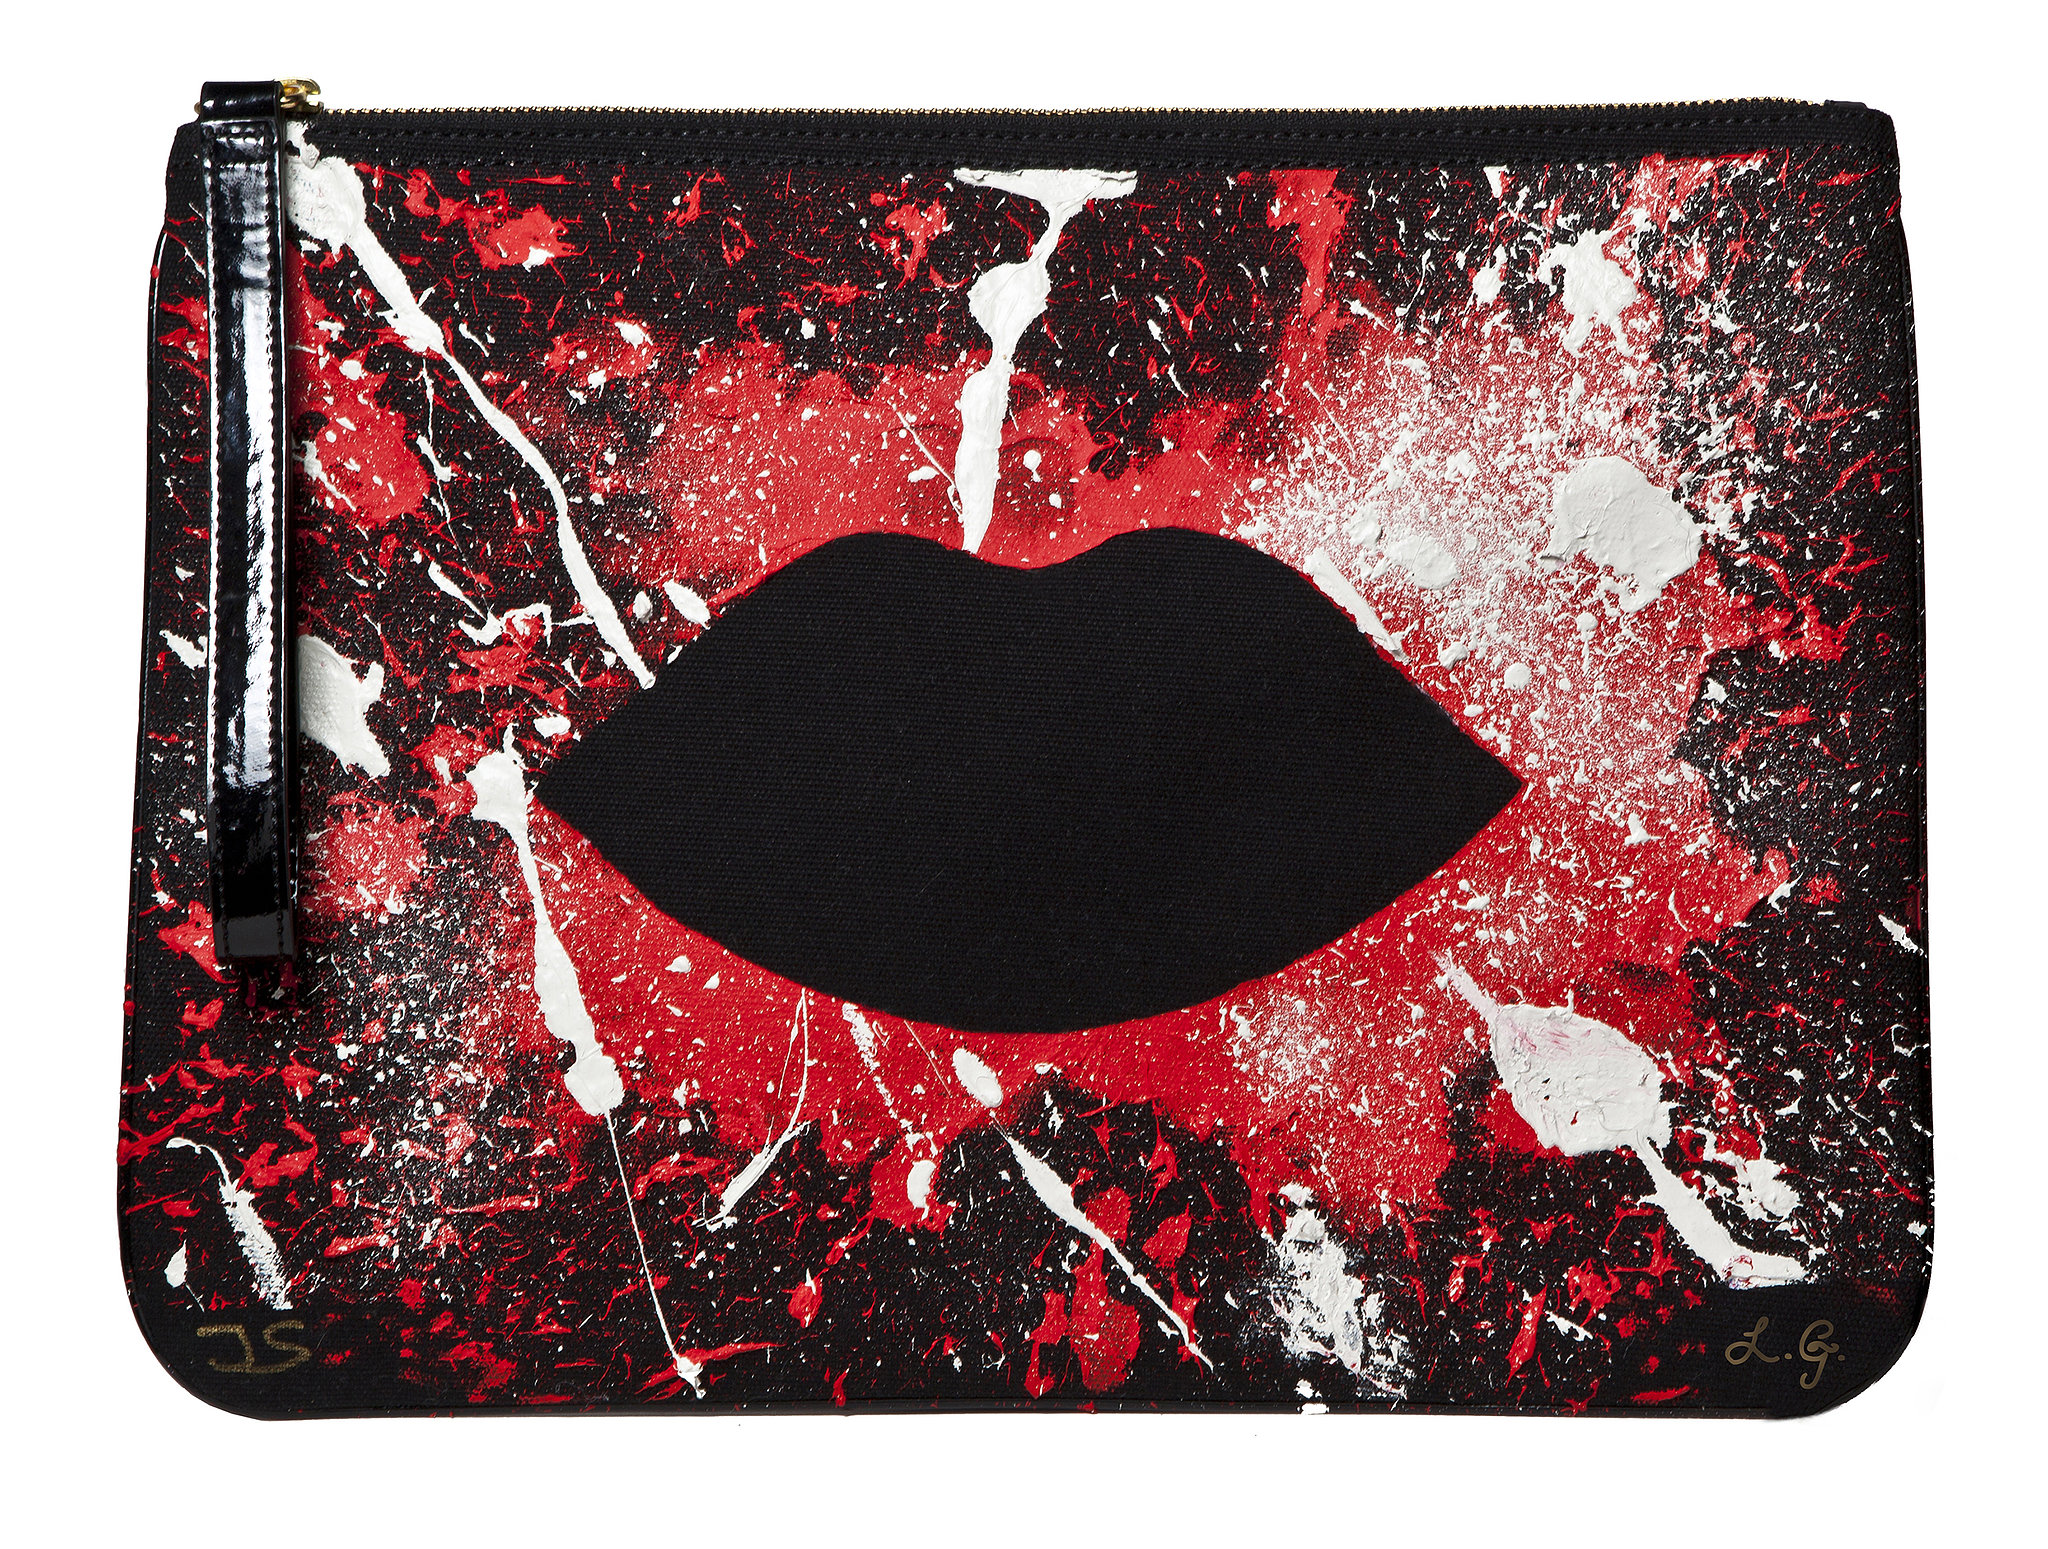 Lulu Guinness teamed with artist Joseph Steele for a painterly pick. The limited-edition clutches ($465) are available July 11. If you love the splattered style, get yours quick — only 180 (each signed and numbered) were produced.